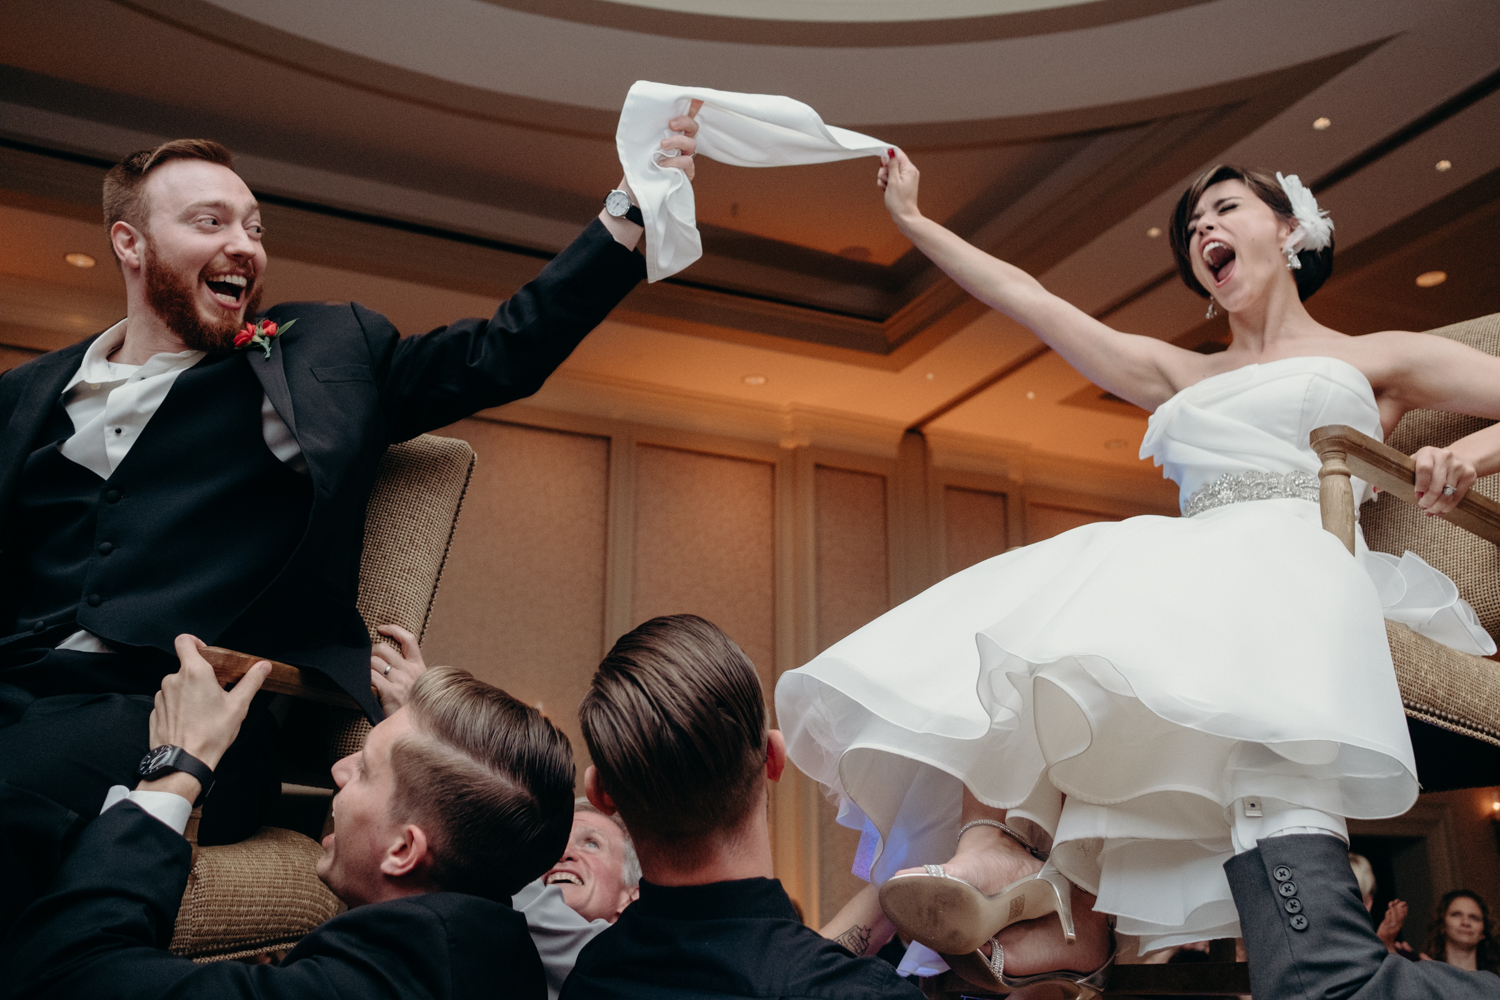 bride and groom in the air during fun hora dance at Virginia Jewish wedding